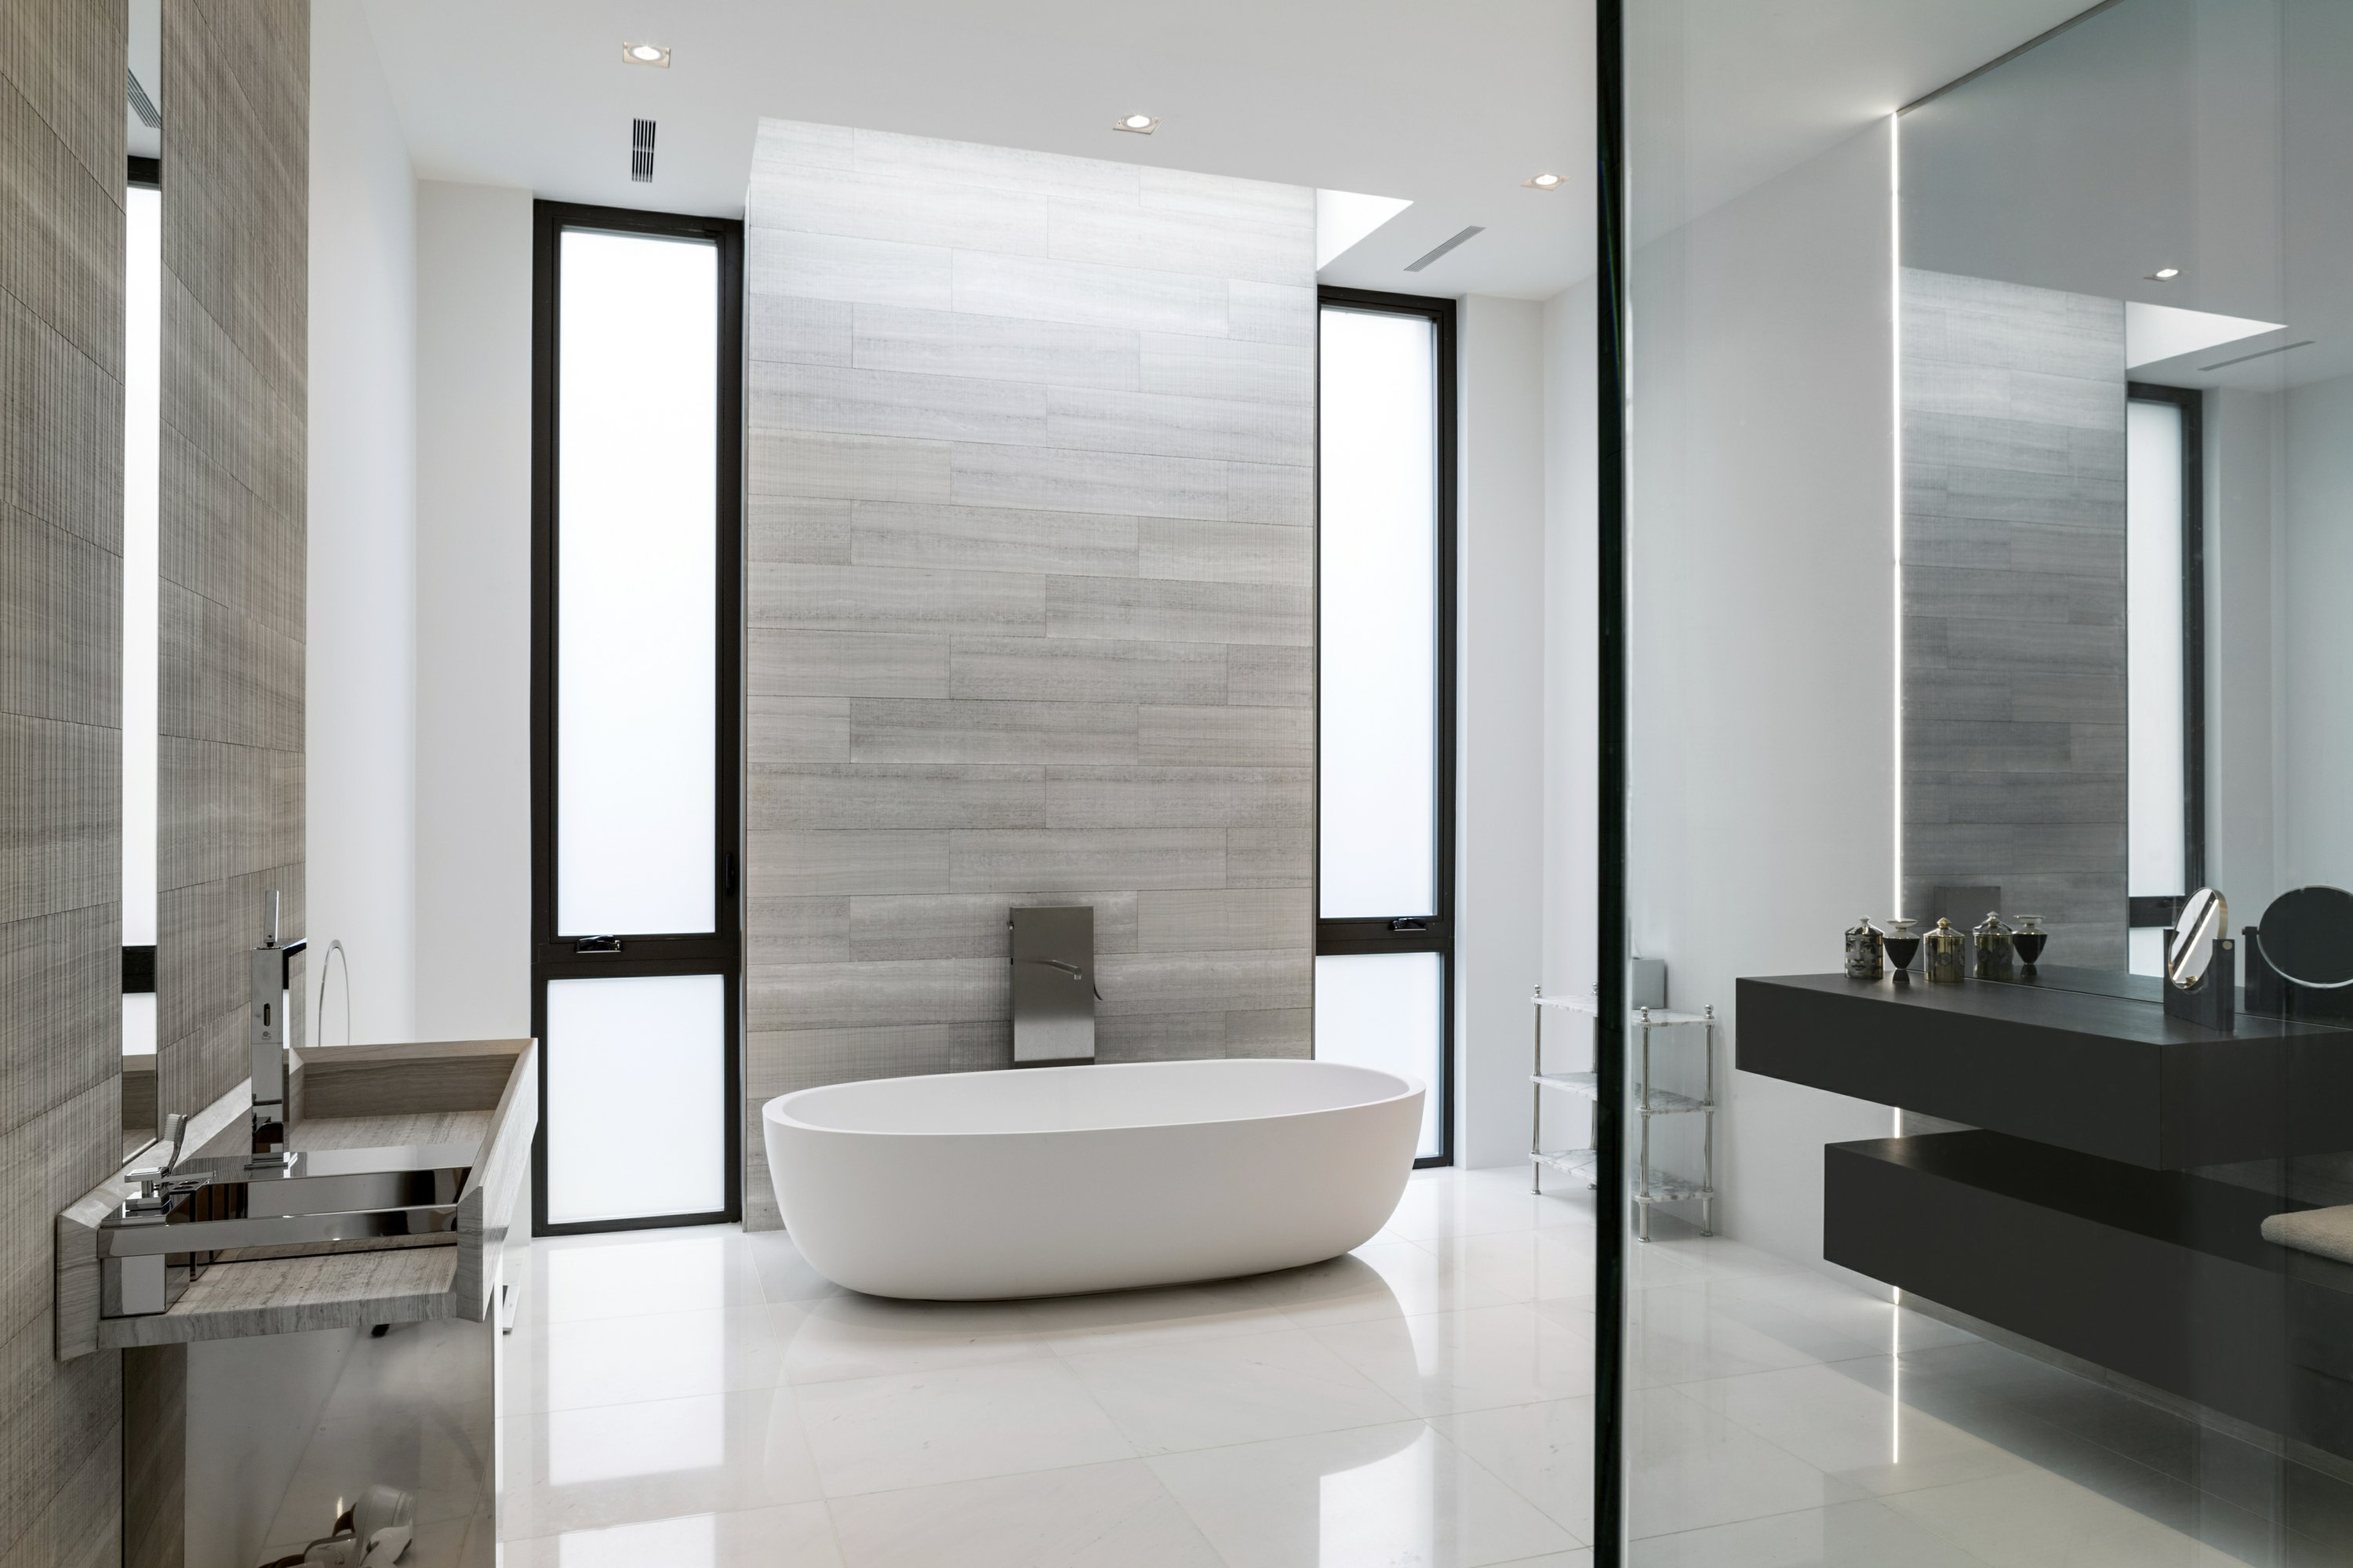 ASK A DESIGNER: Small touches create a great master bathroom